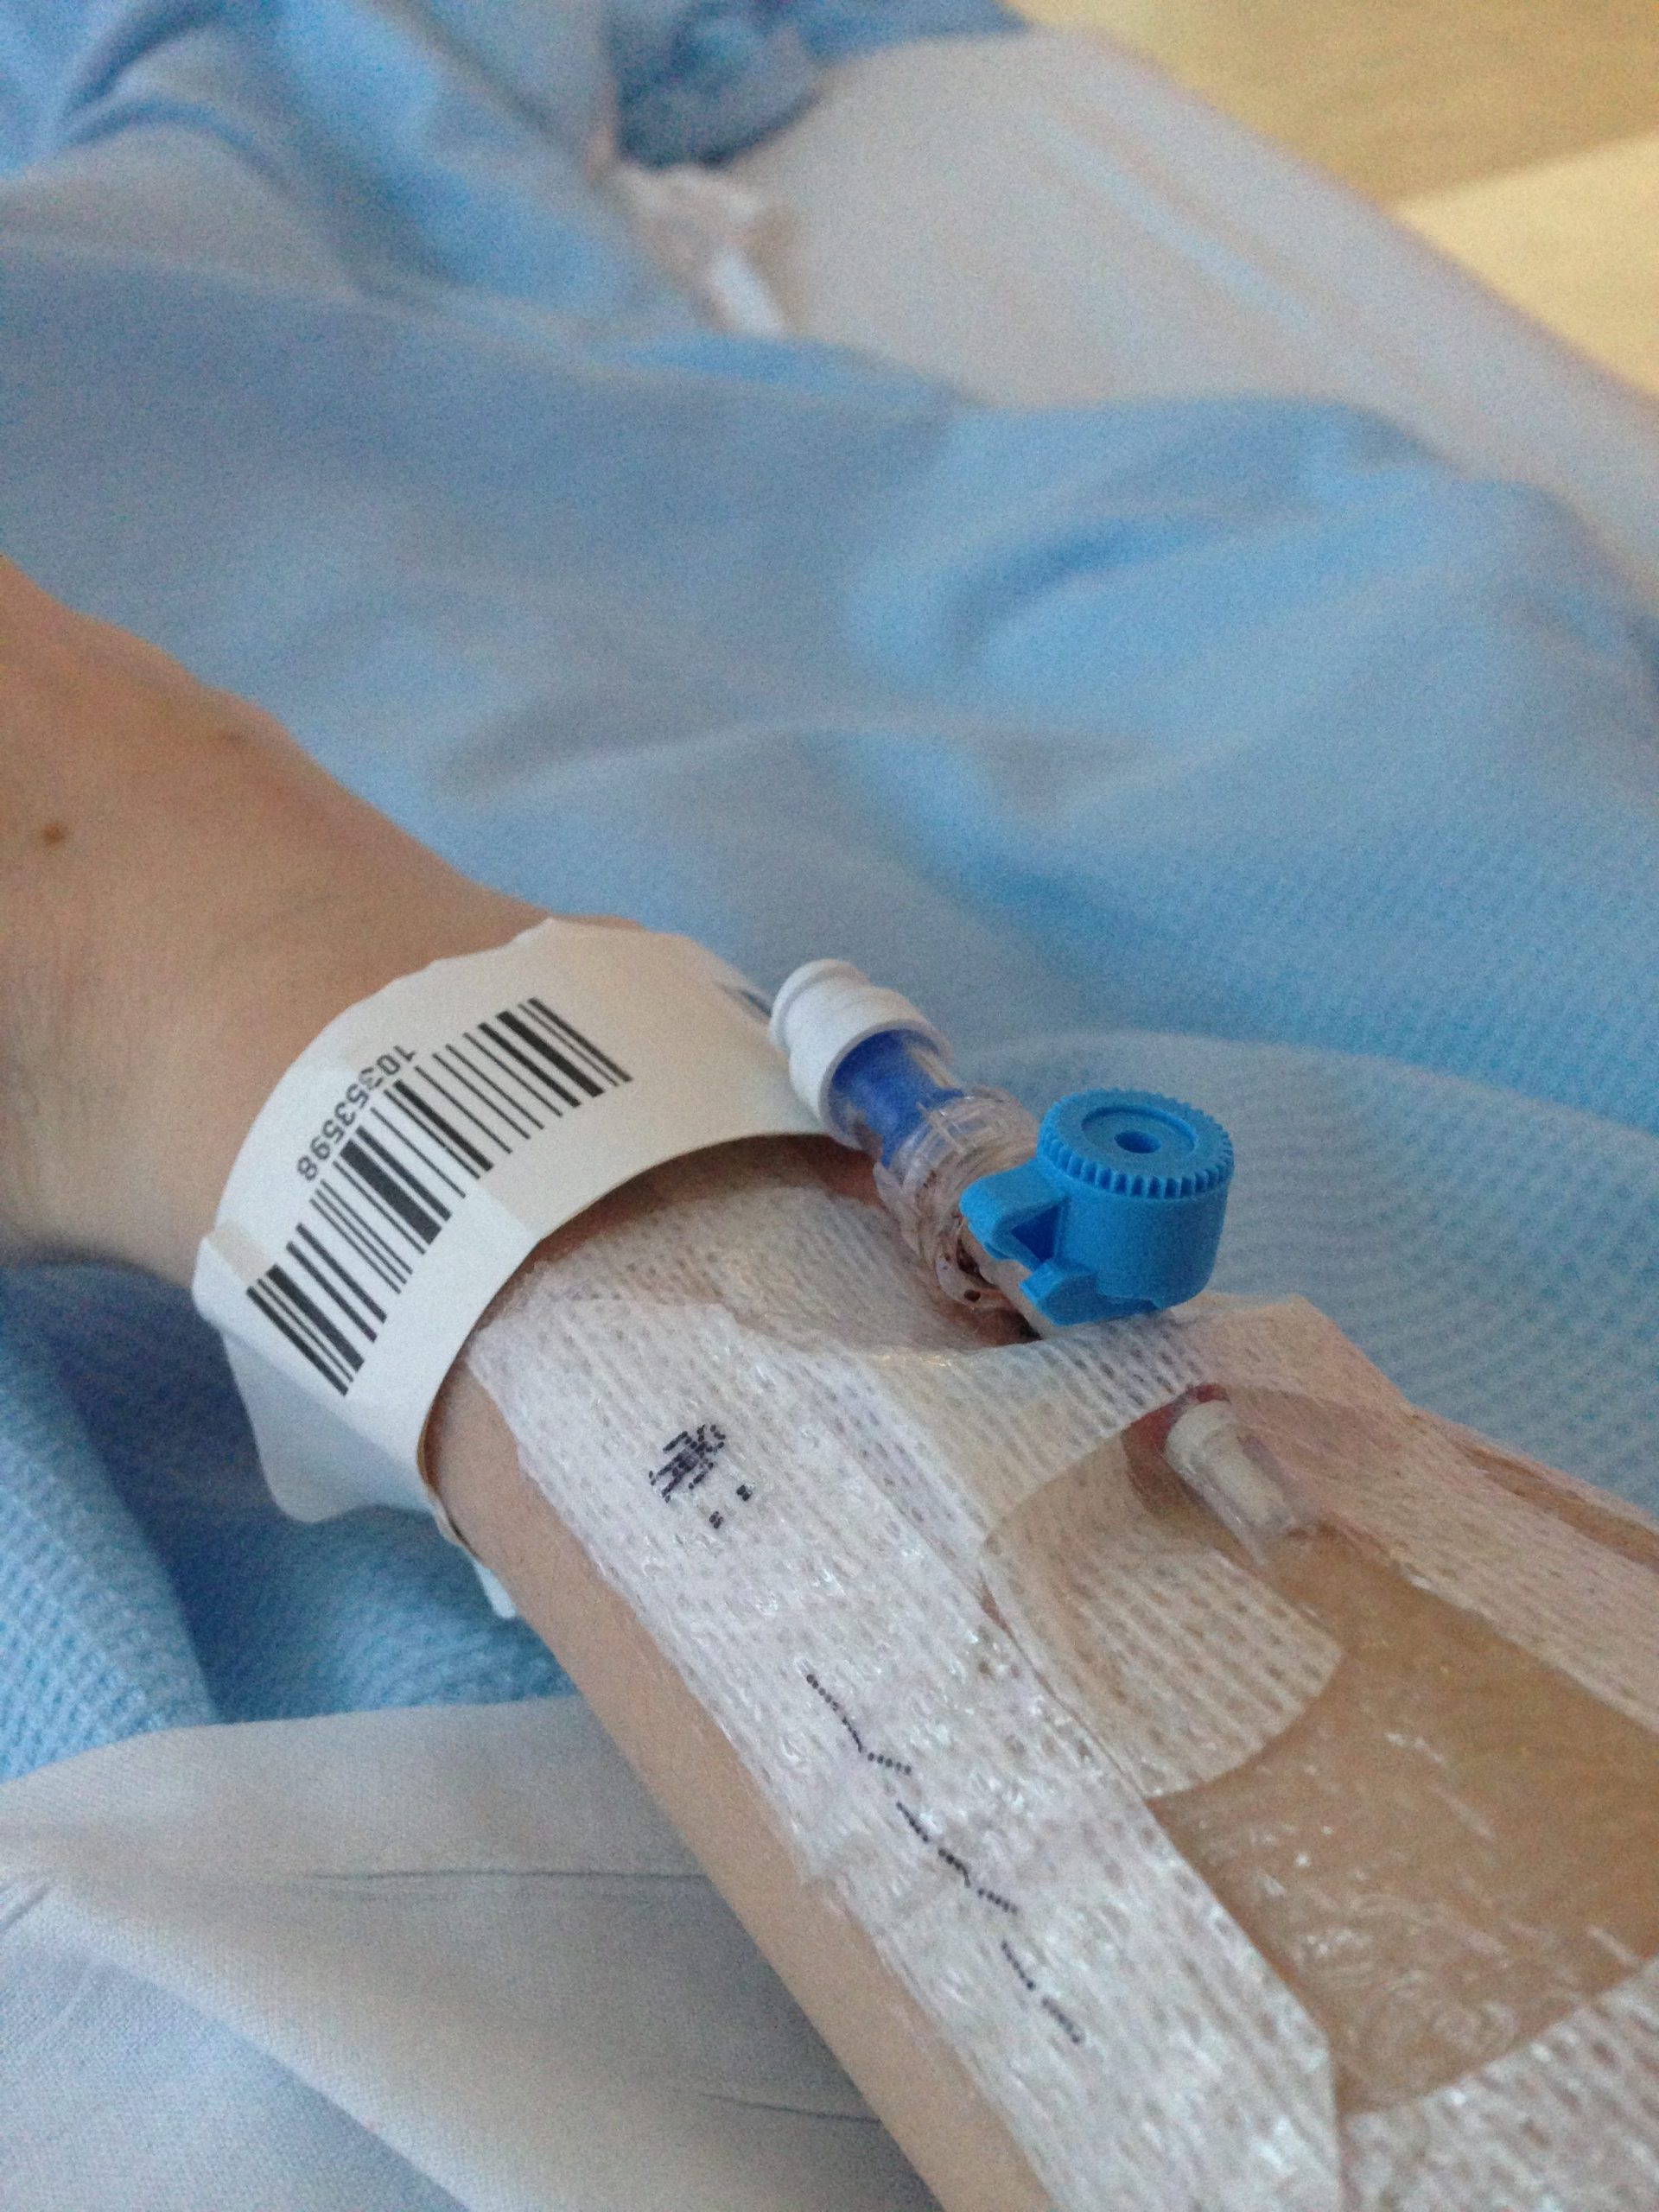 A close-up of my right arm with the hospital tag around my wrist and an IV in my arm.